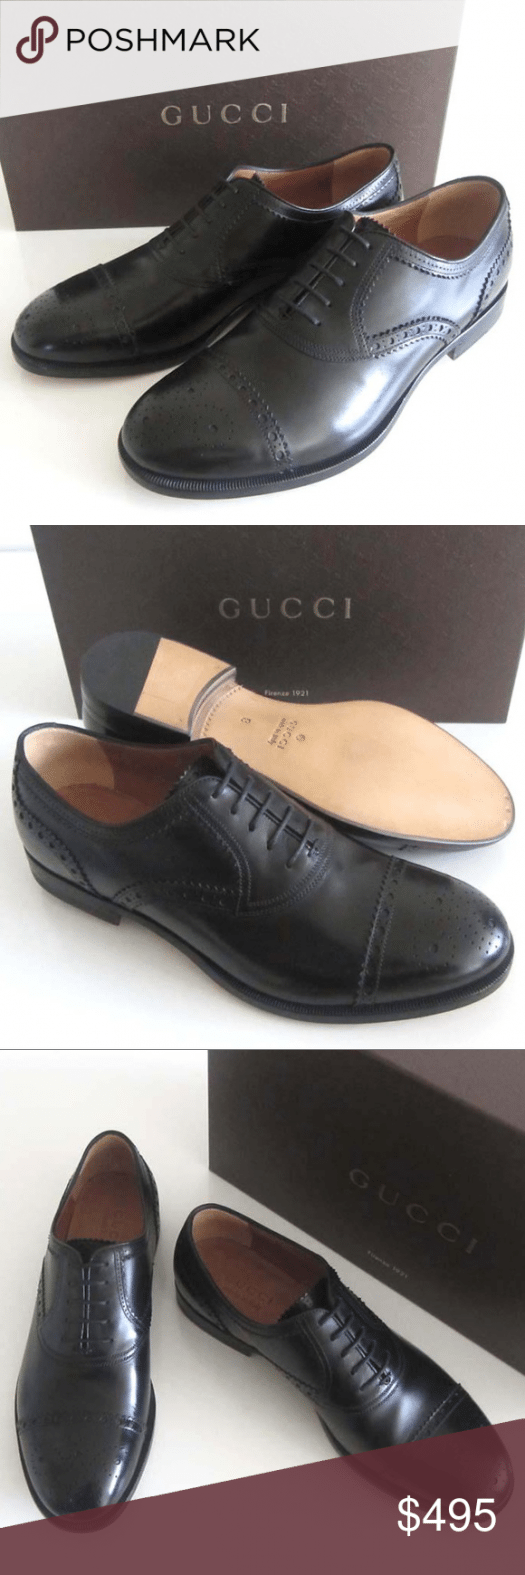 new GUCCI black perforated cap toe shoes 8  9 US Mens black leather GUCCI  Style 312279  dress shoes with toe medallion perforated trim details five eyelet lace up front...